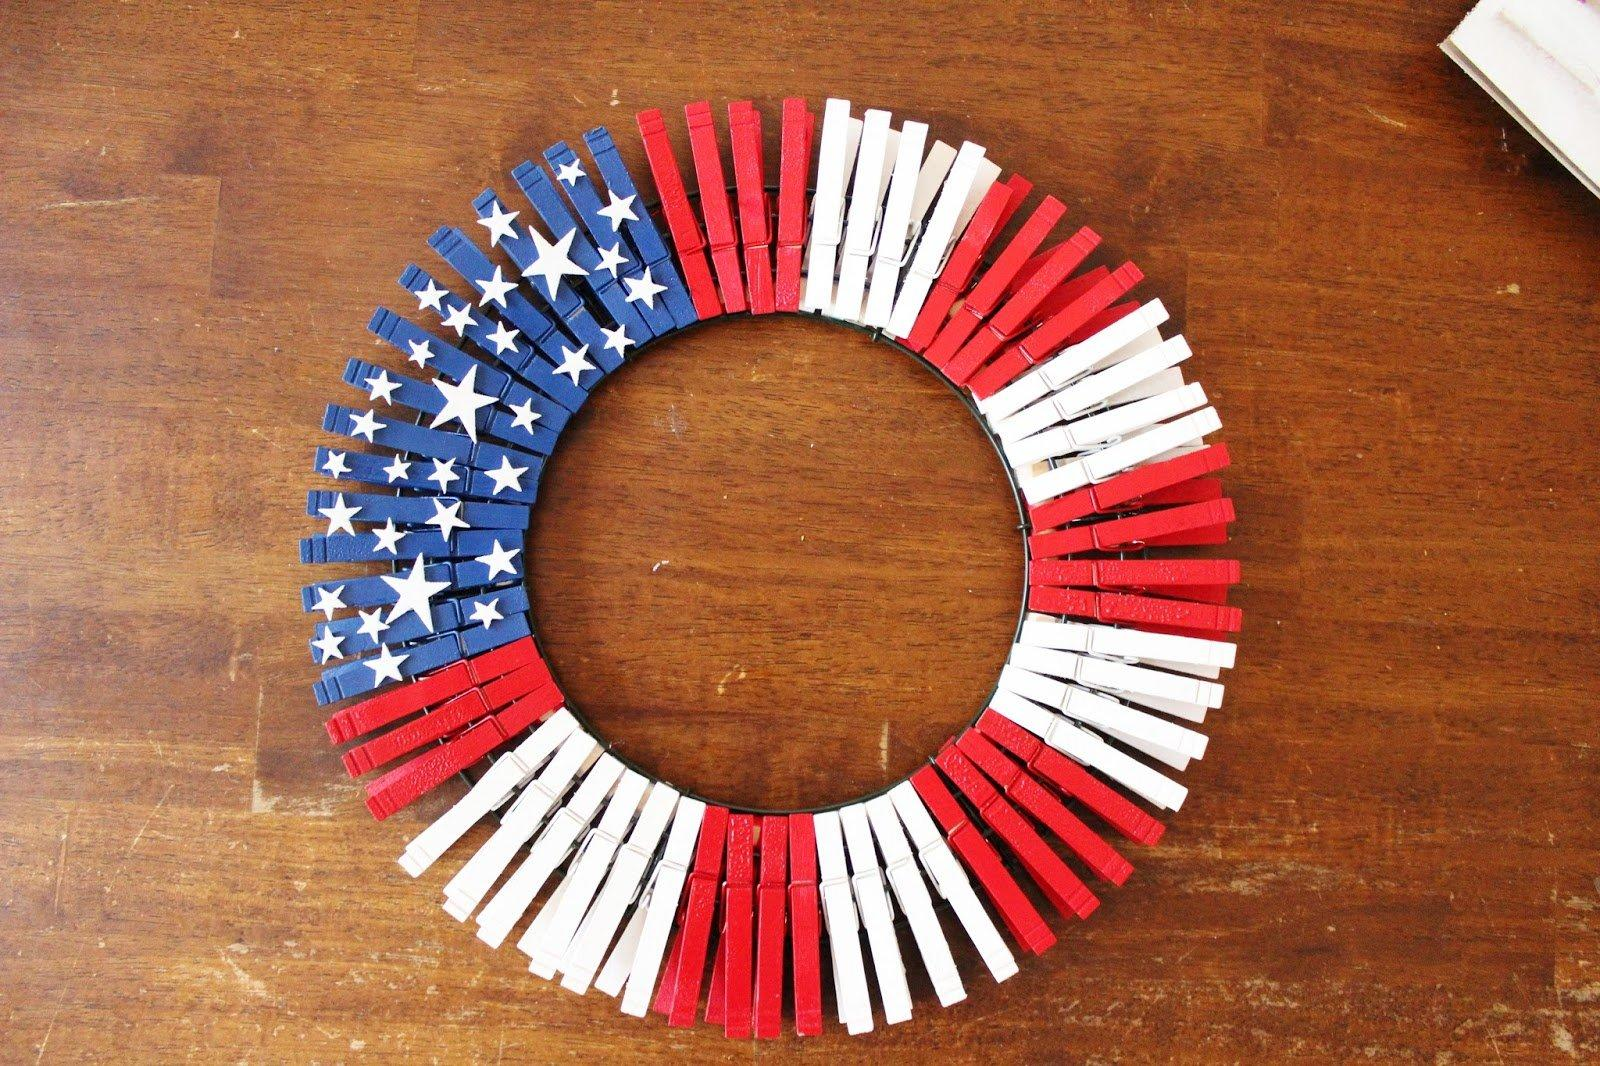 15 Easy Diy S For Giving Your Door The Perfect Patriotic